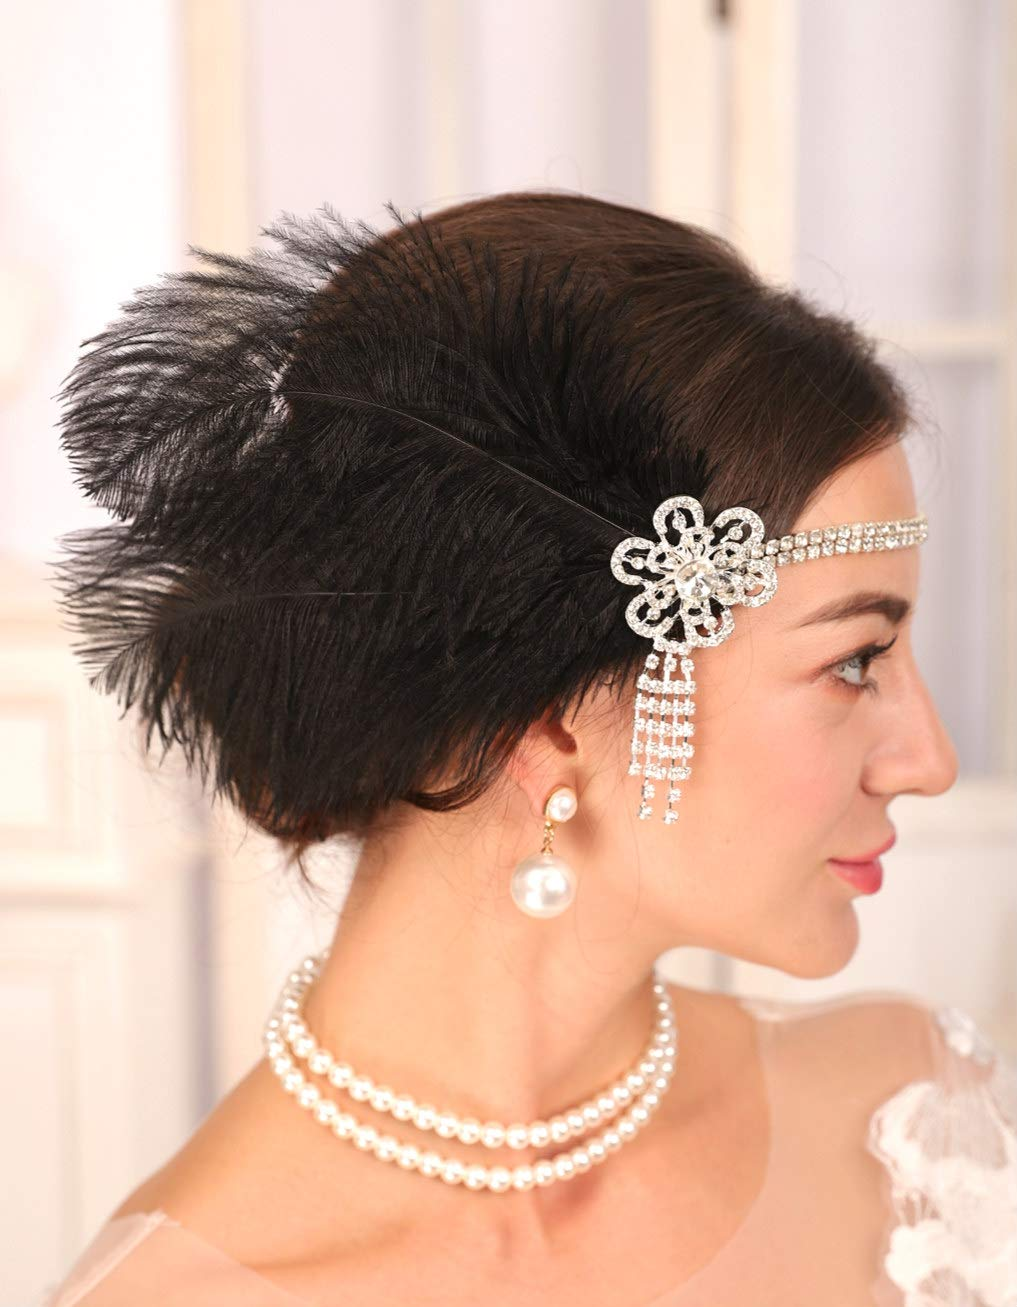 Sither 1920s Black Feather Headband Vintage 20s Headpiece with Silver Headband for Women 1920s Flapper Headpiece Hair Accessories for Cosplay Costume Party Halloween (crystal eadband)